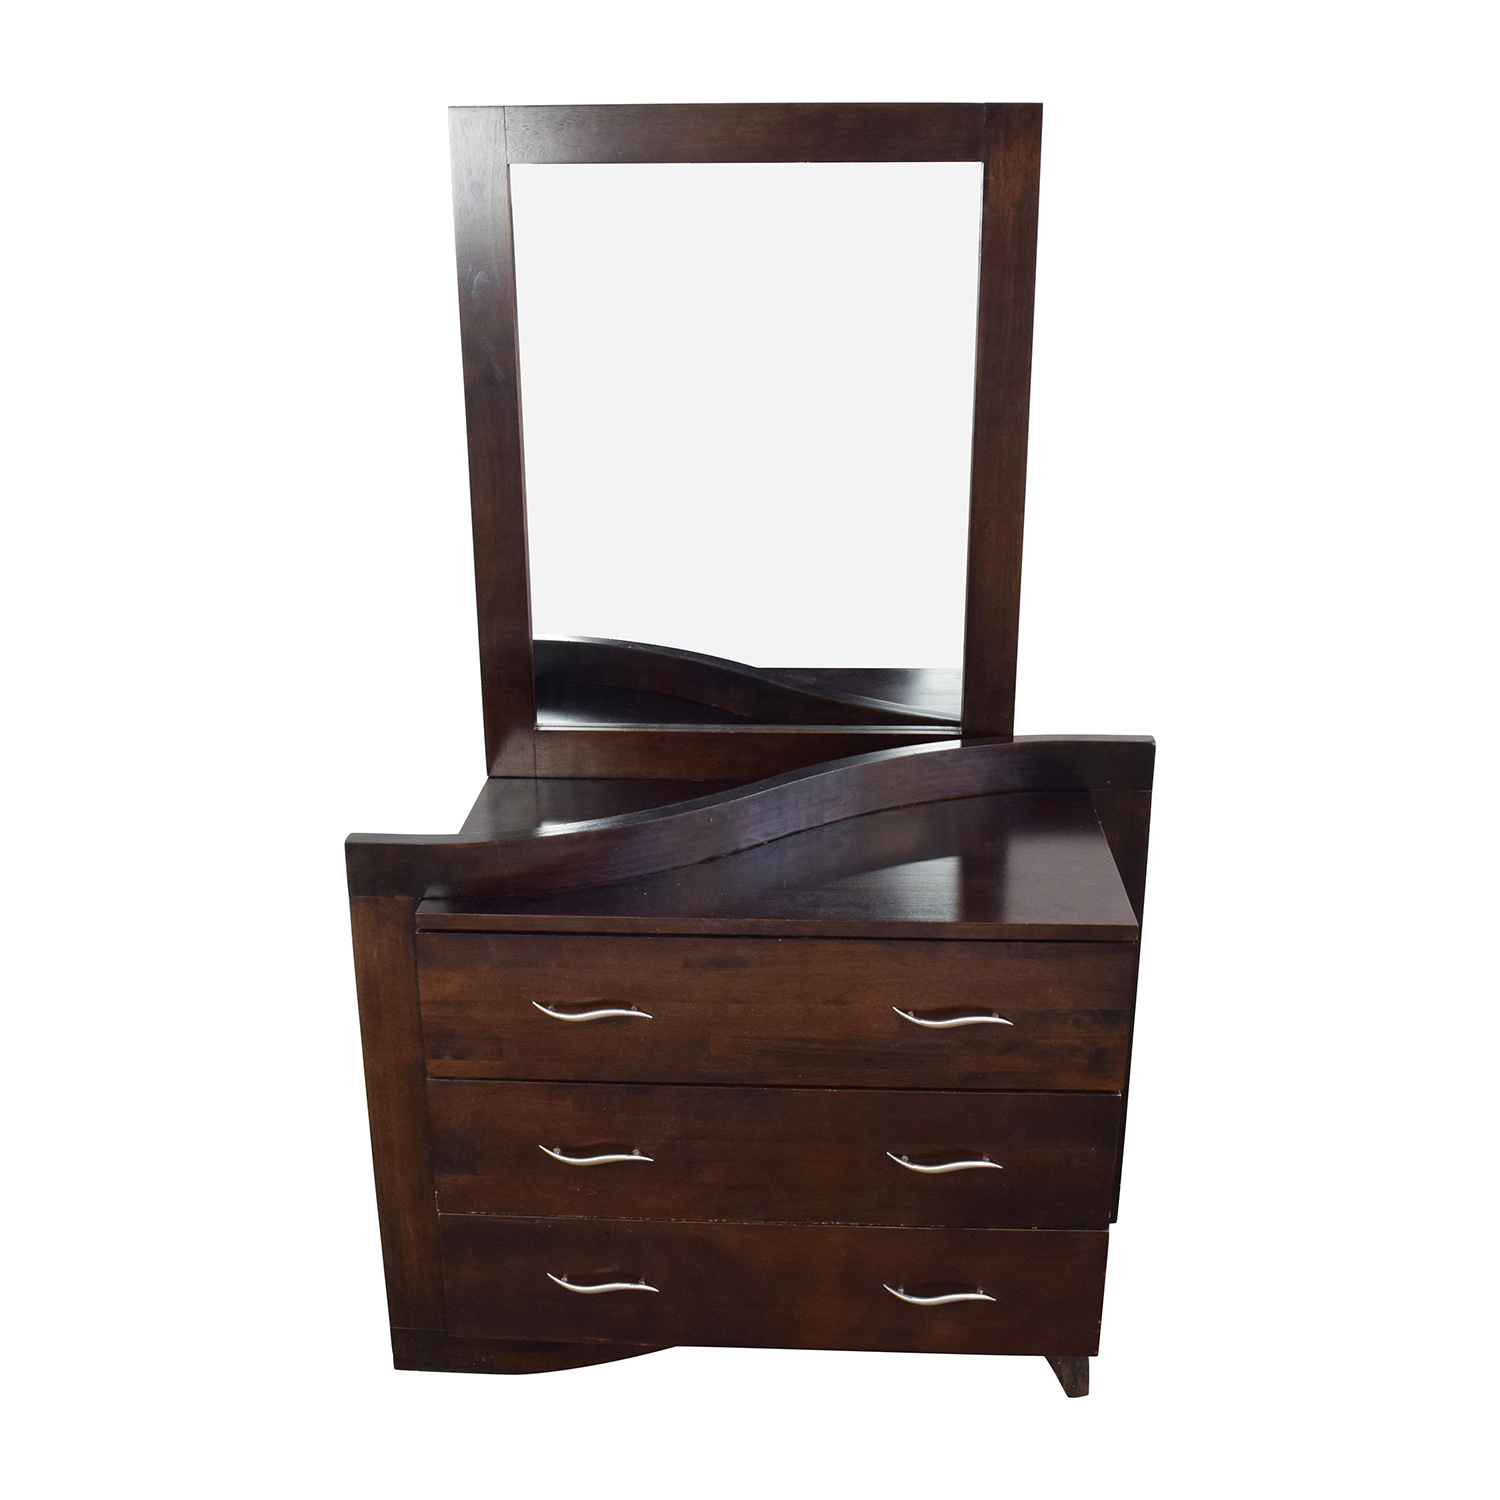 Unique Curved 3-Drawer Dresser with Mirror Dark Brown